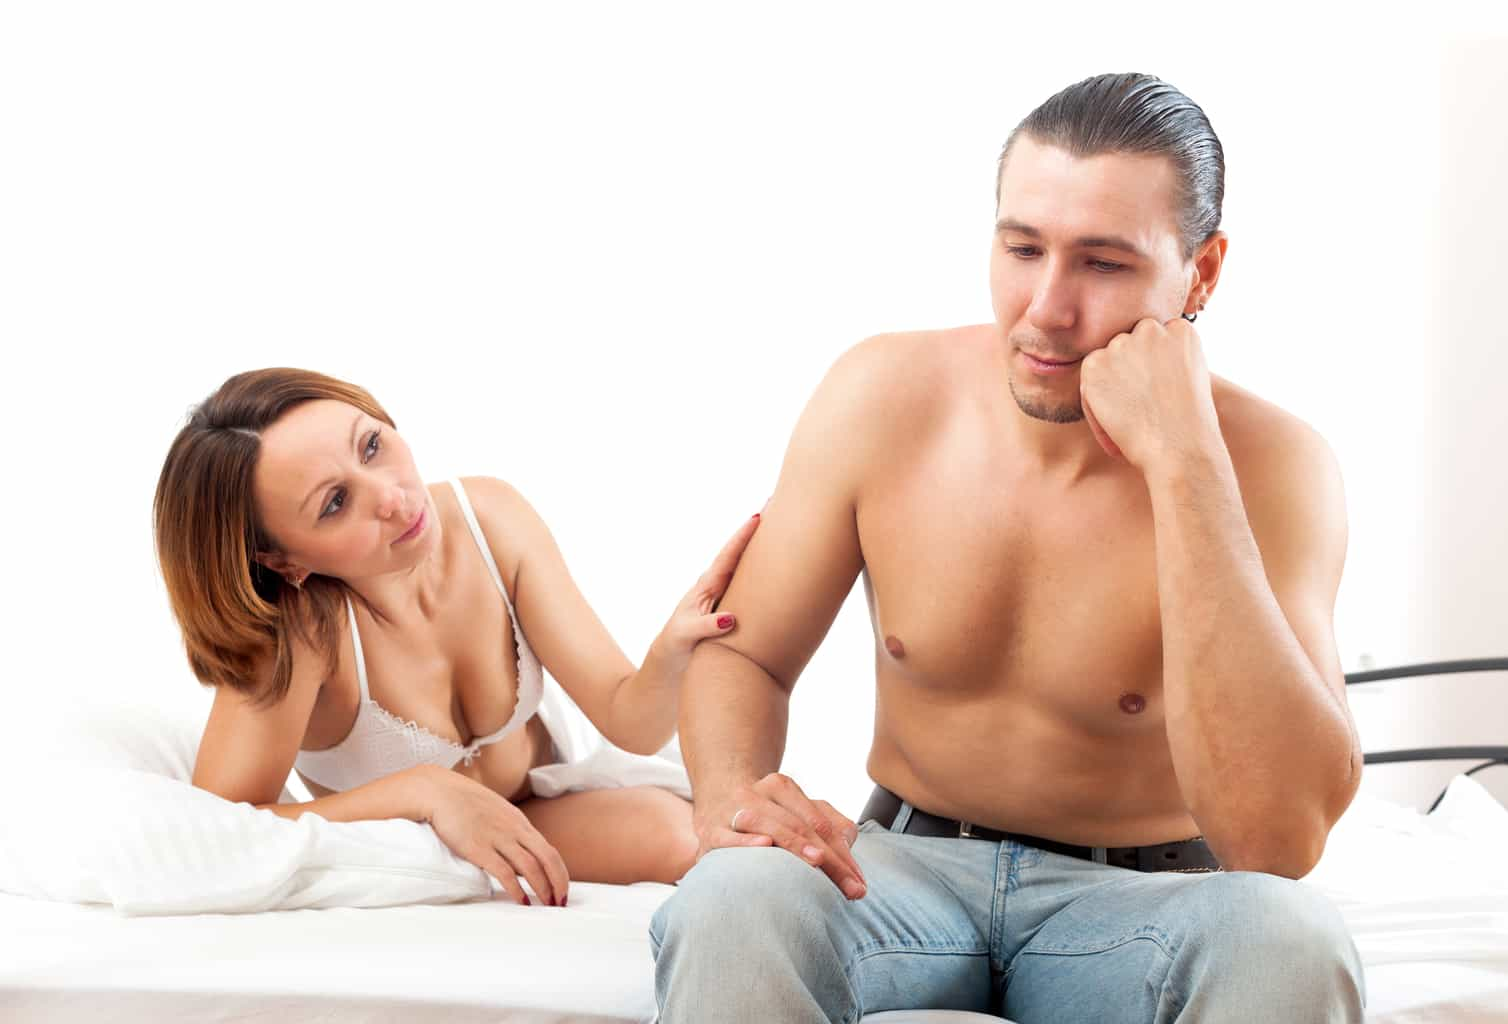 Can lowering prolactin improve difficult bedroom problems?